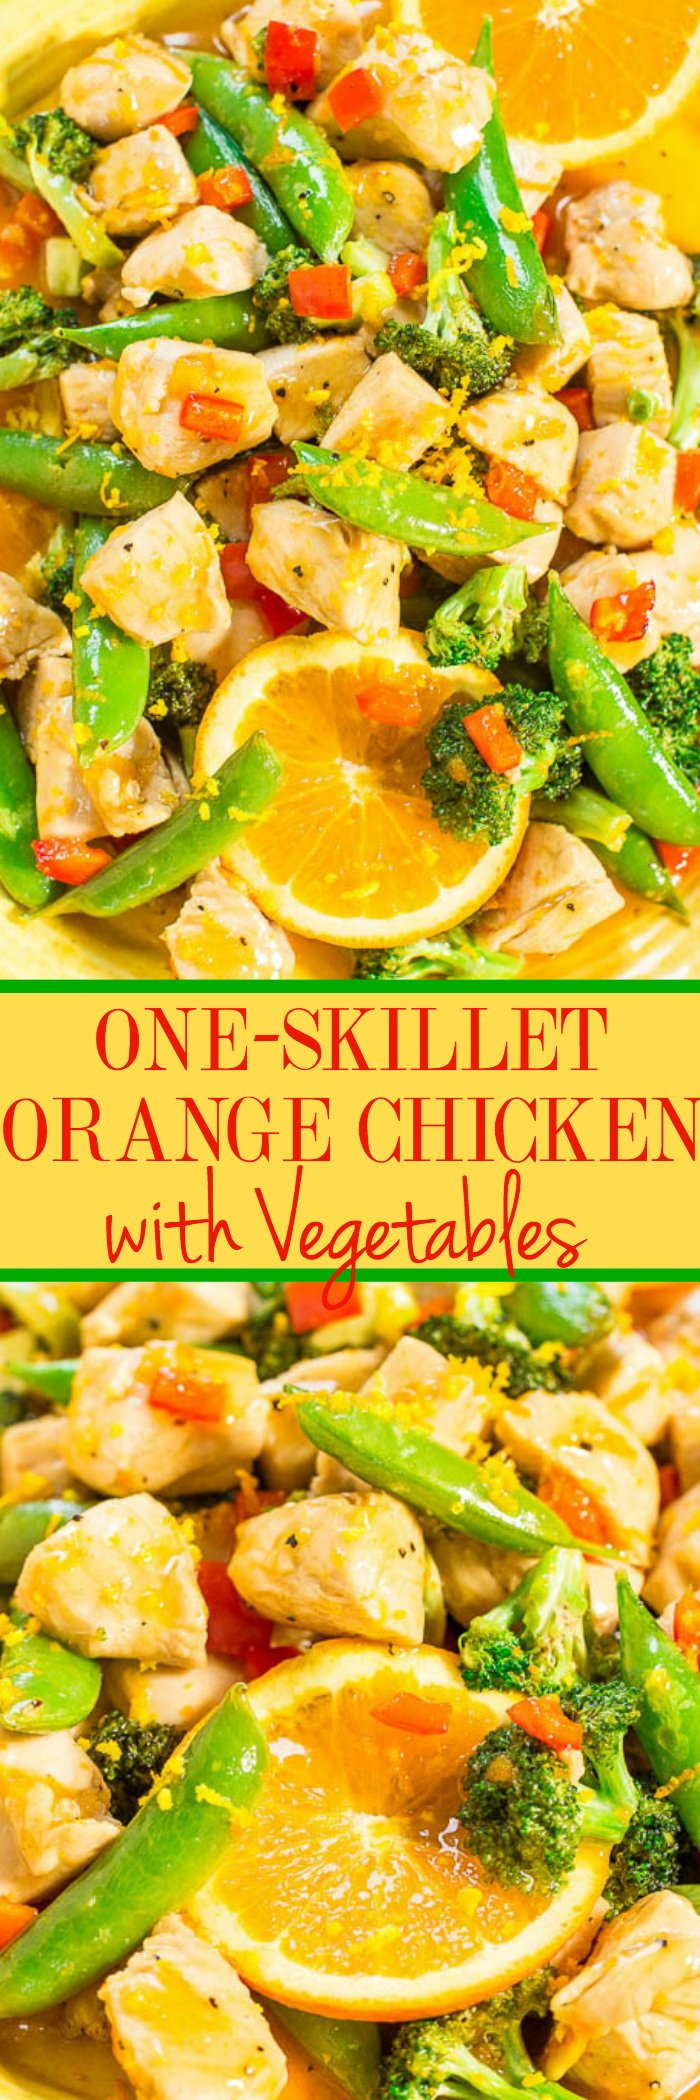 One-Skillet Orange Chicken with Vegetables - Easy, ready in 15 minutes, healthy (no breading, no frying), and the orange flavor just POPS!! Perfect for busy weeknights, a family favorite, and you'll make this over and over!!